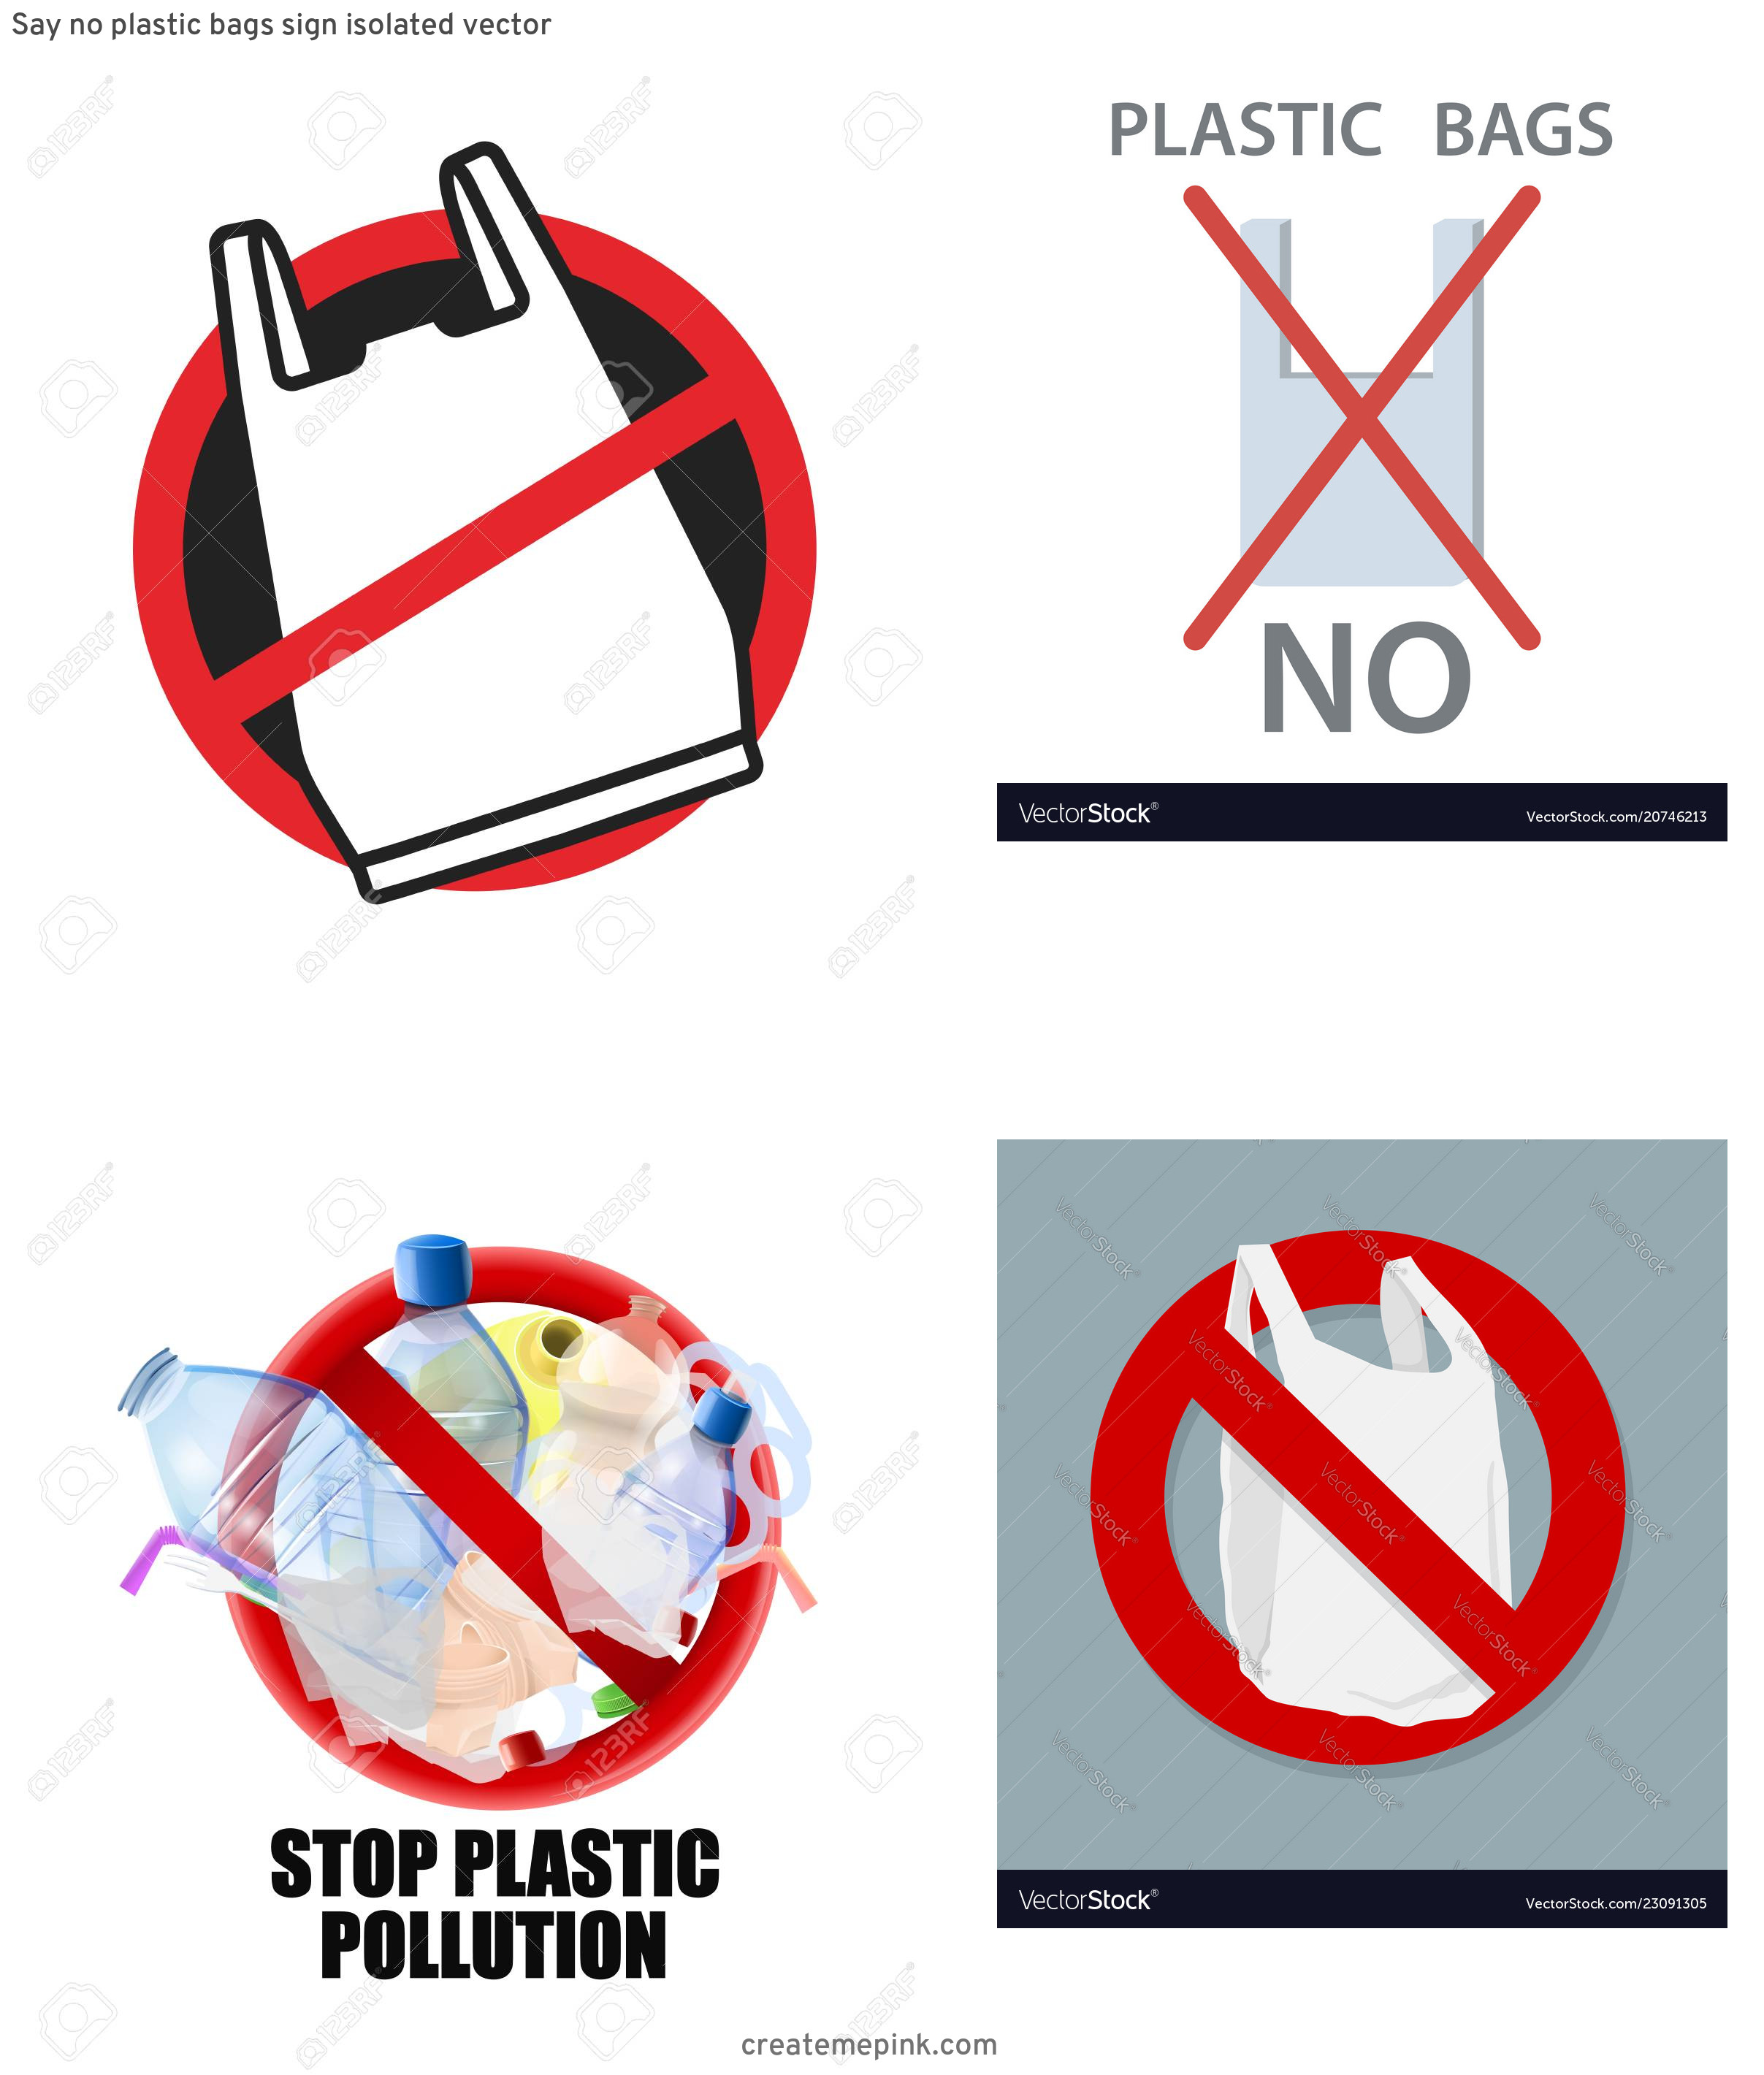 Vector No Plastic: Say No Plastic Bags Sign Isolated Vector